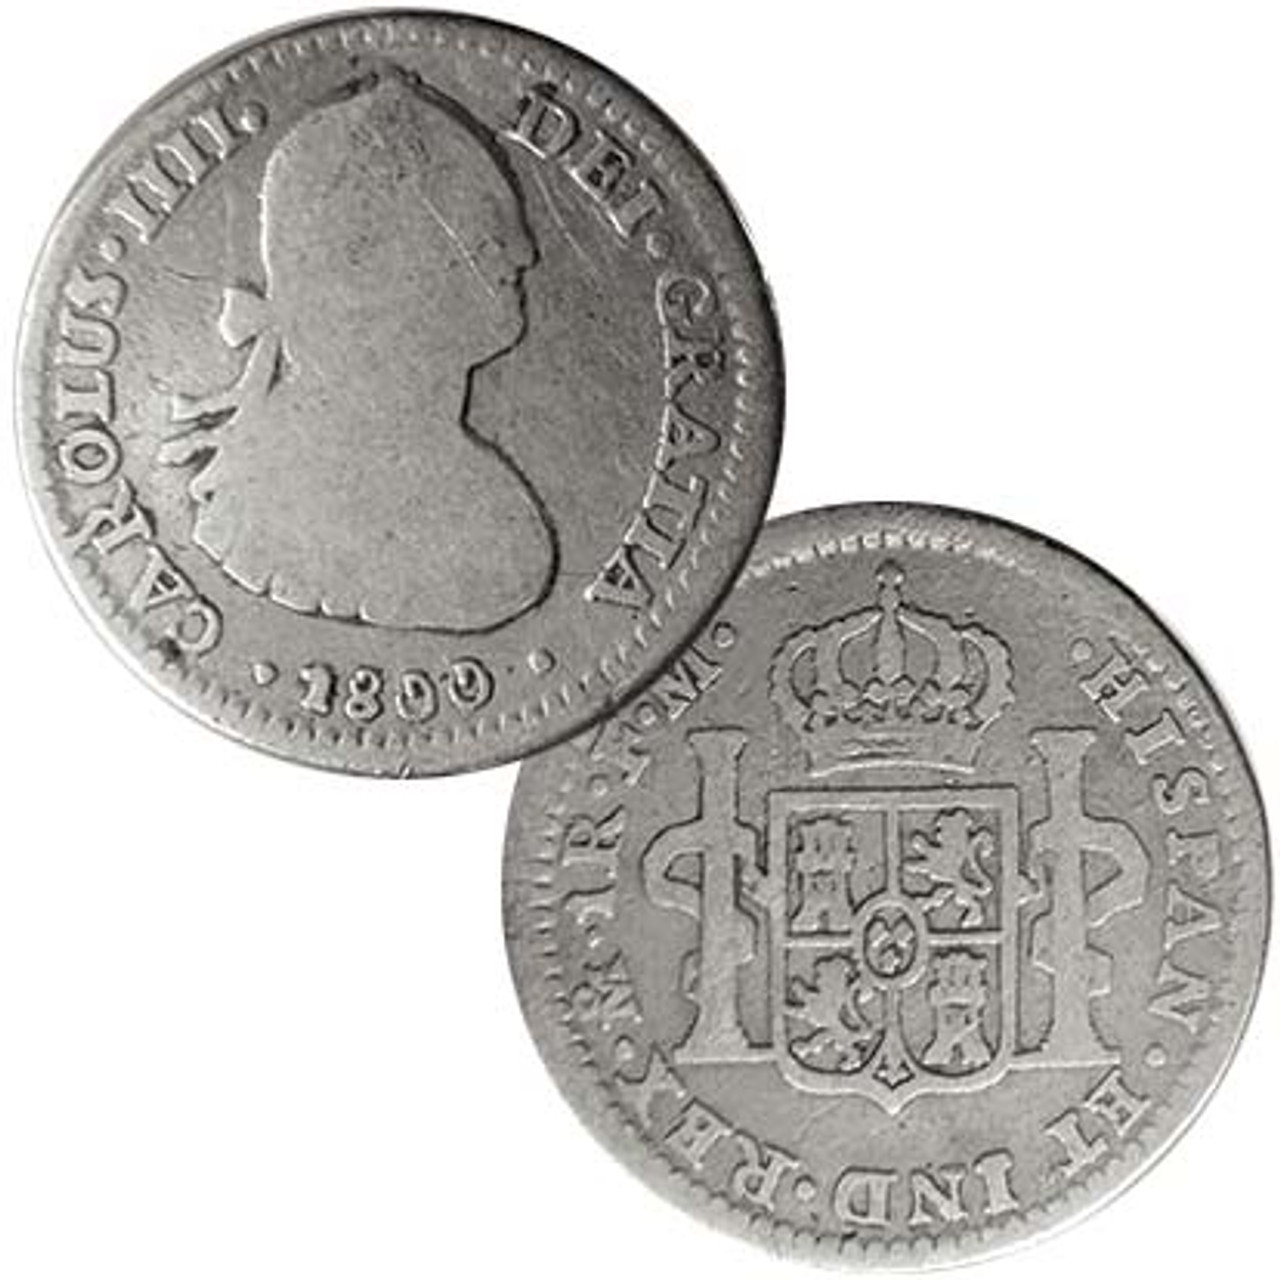 Spanish 1772-1825 One Bit Silver Reale Image 1